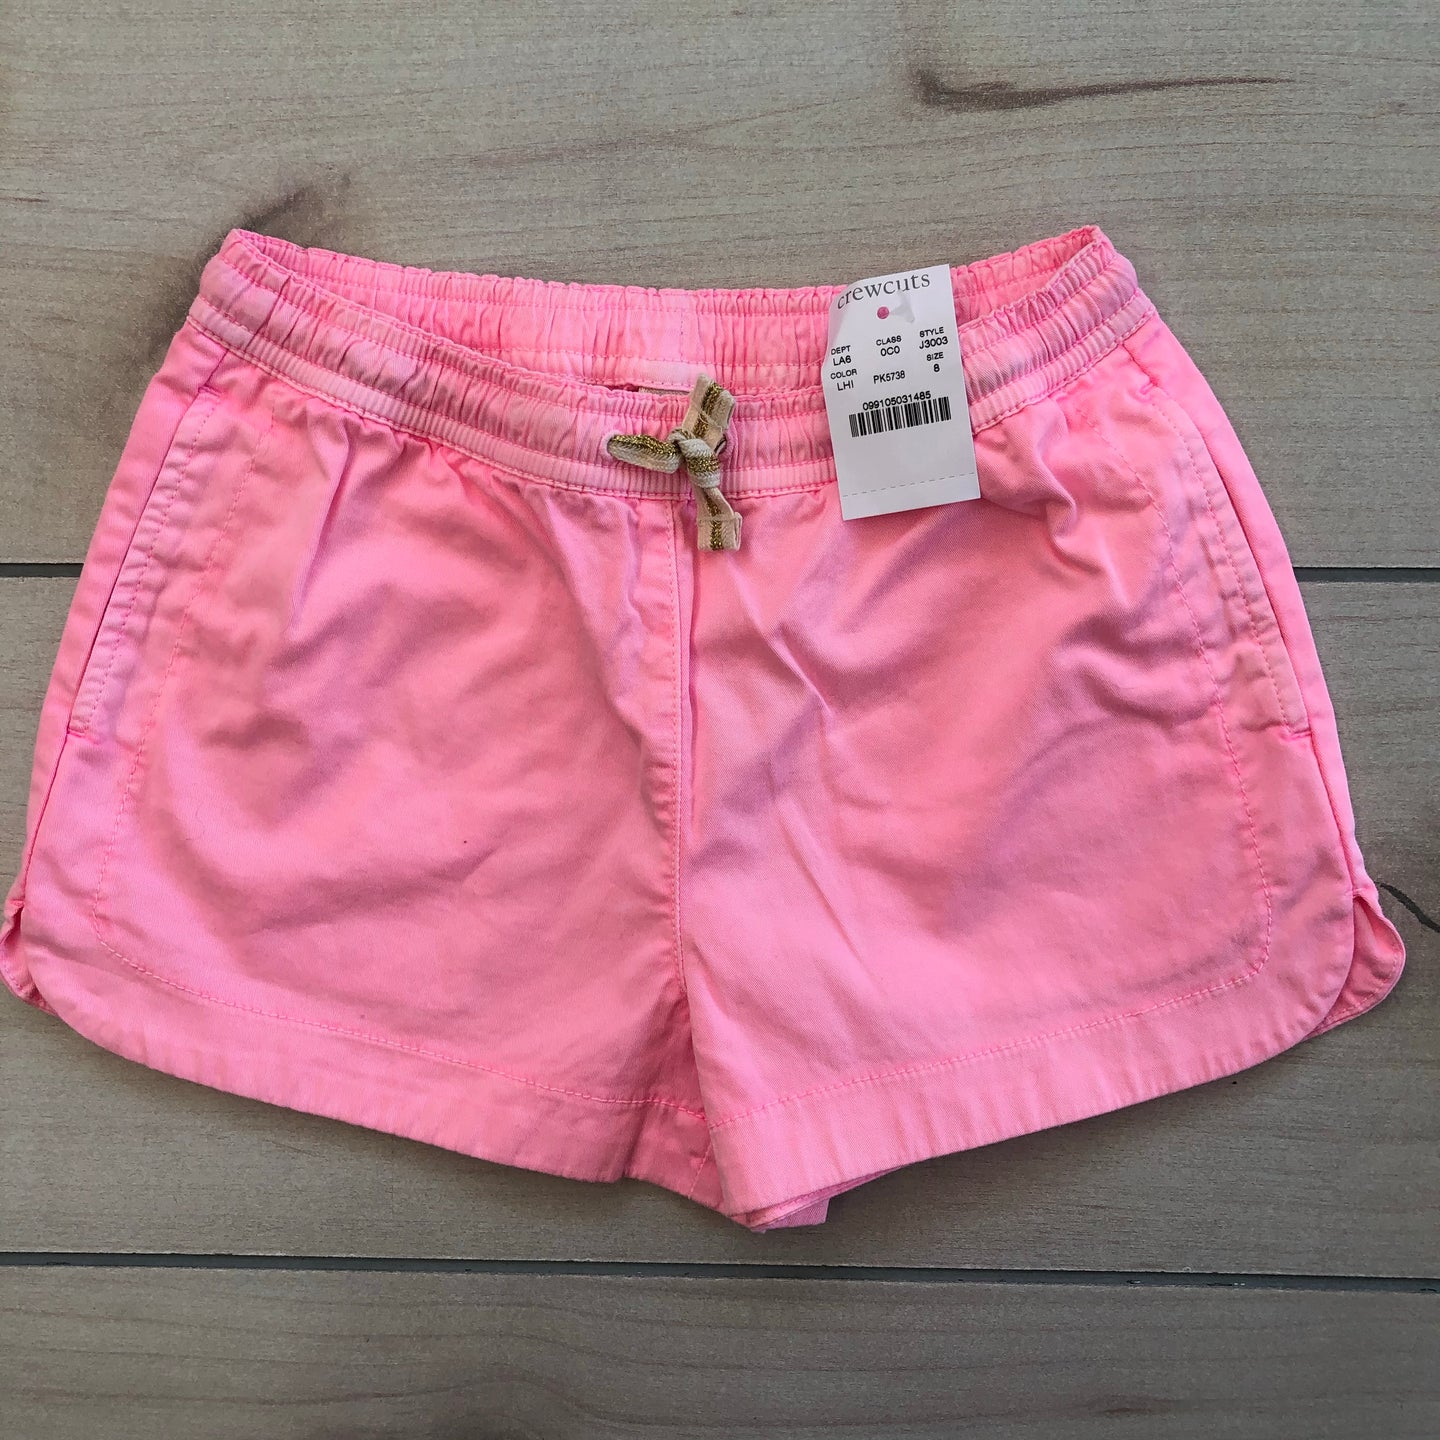 Crewcuts Pink Pull on Shorts Size 8 NWT